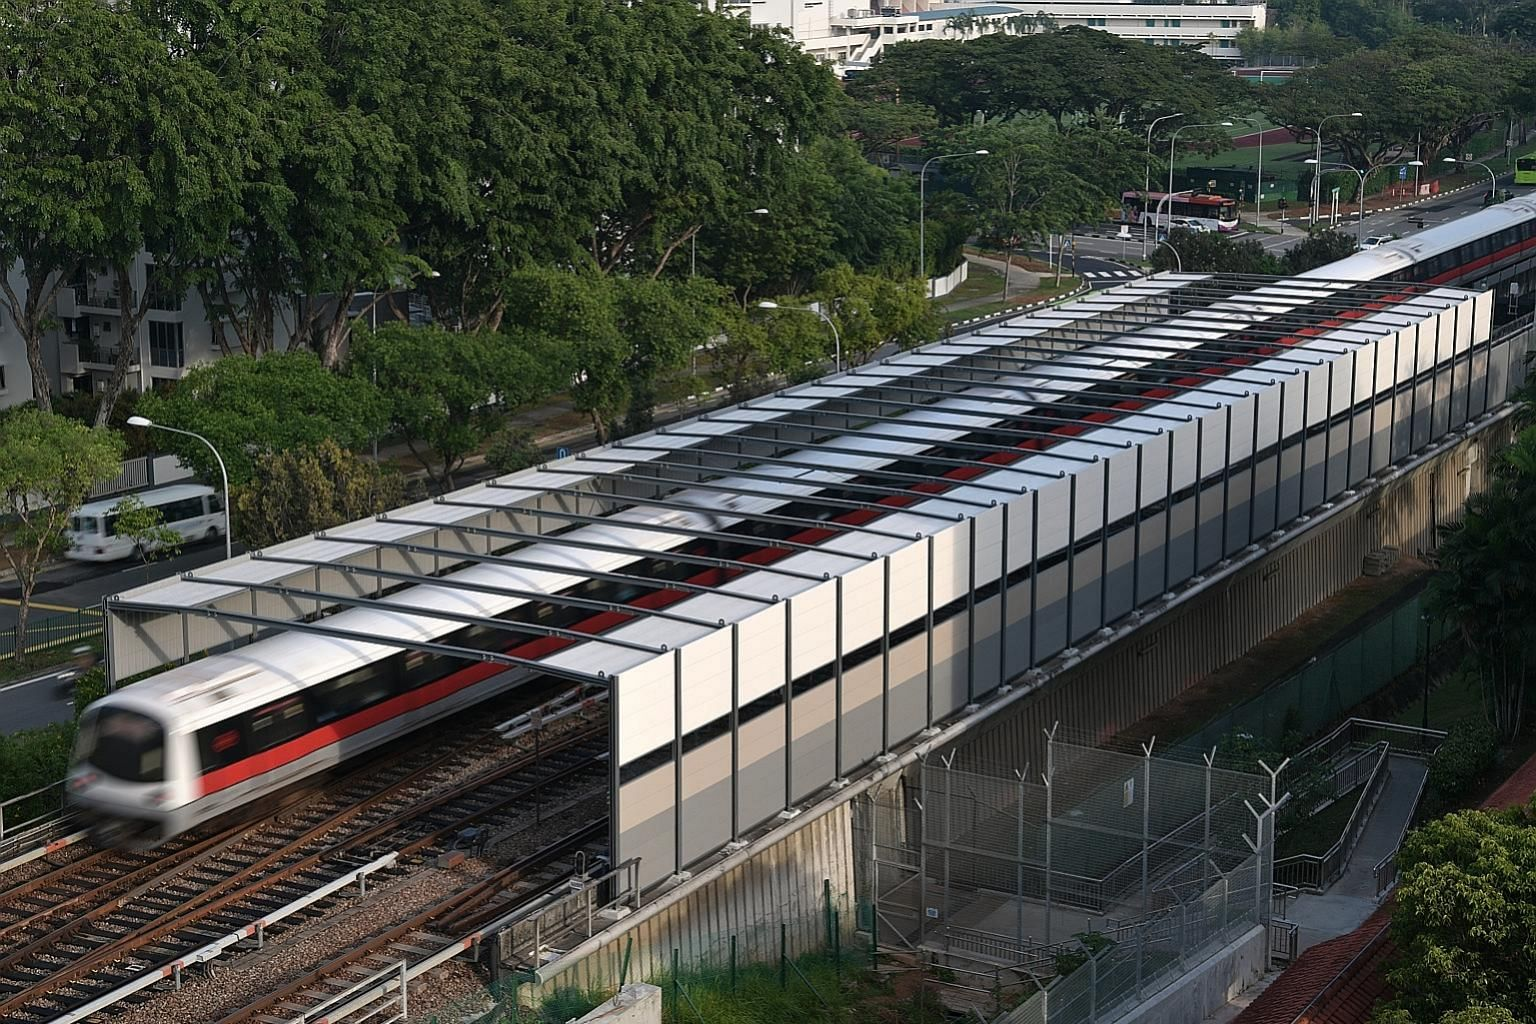 """Recently installed railway noise barriers that have a semi-enclosed """"portal"""" design to handle the higher noise levels at turnout sections, where trains switch tracks, next to Block 503 Ang Mo Kio Avenue 5. ST PHOTO: KUA CHEE SIONG"""